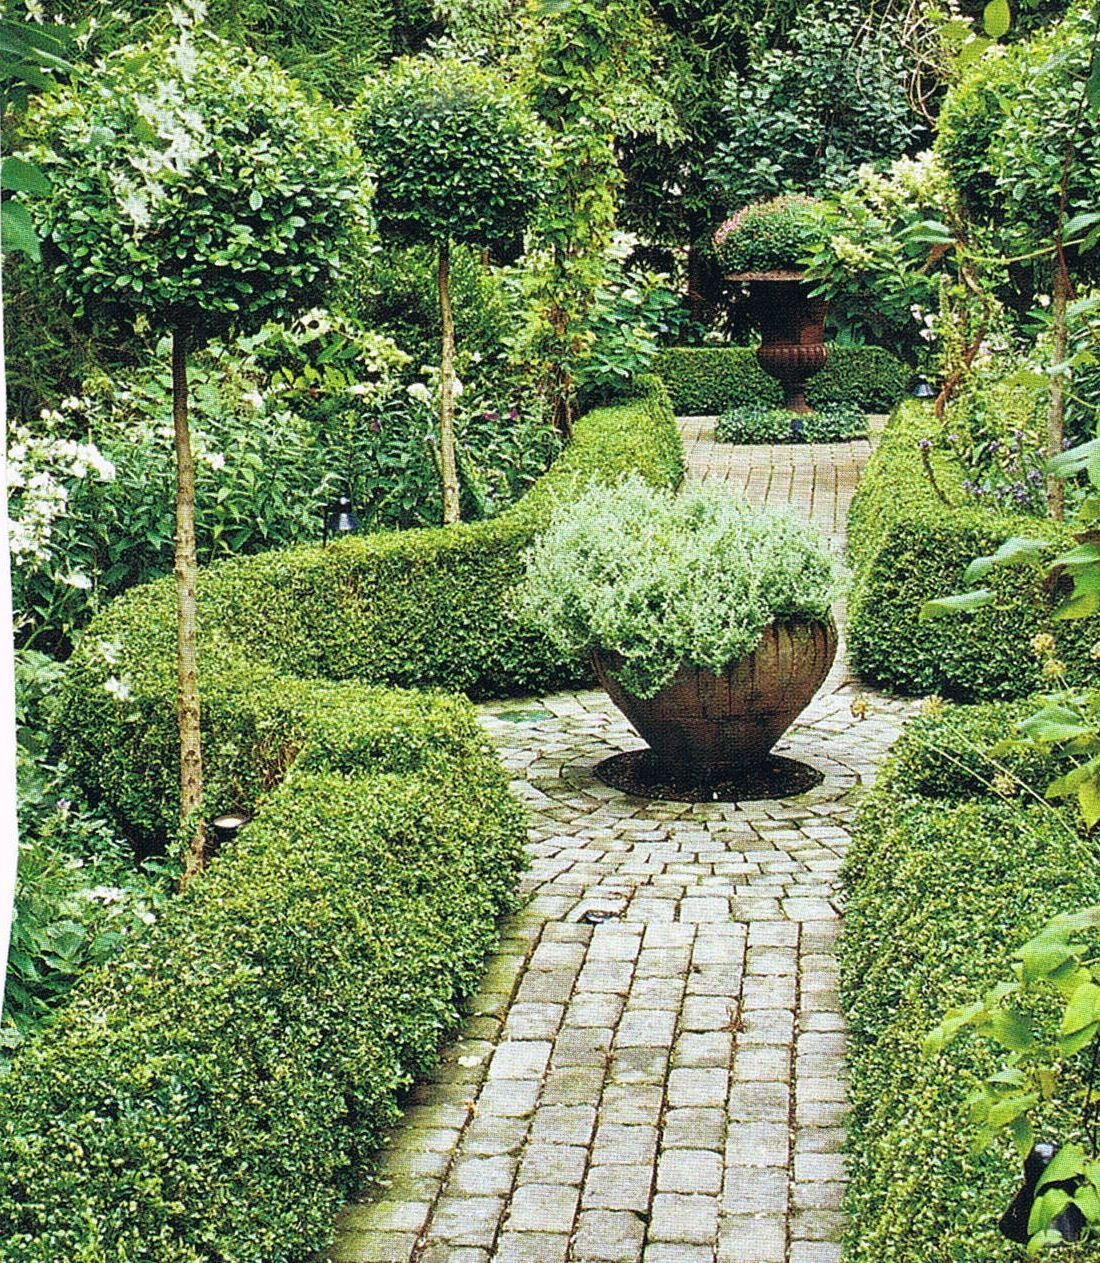 see this done with a red brick pathway, Lavender hedges instead of stinky Boxwood and a Rosemary topiary or Golden Bay tree in the bowl planter. That would be amazing!